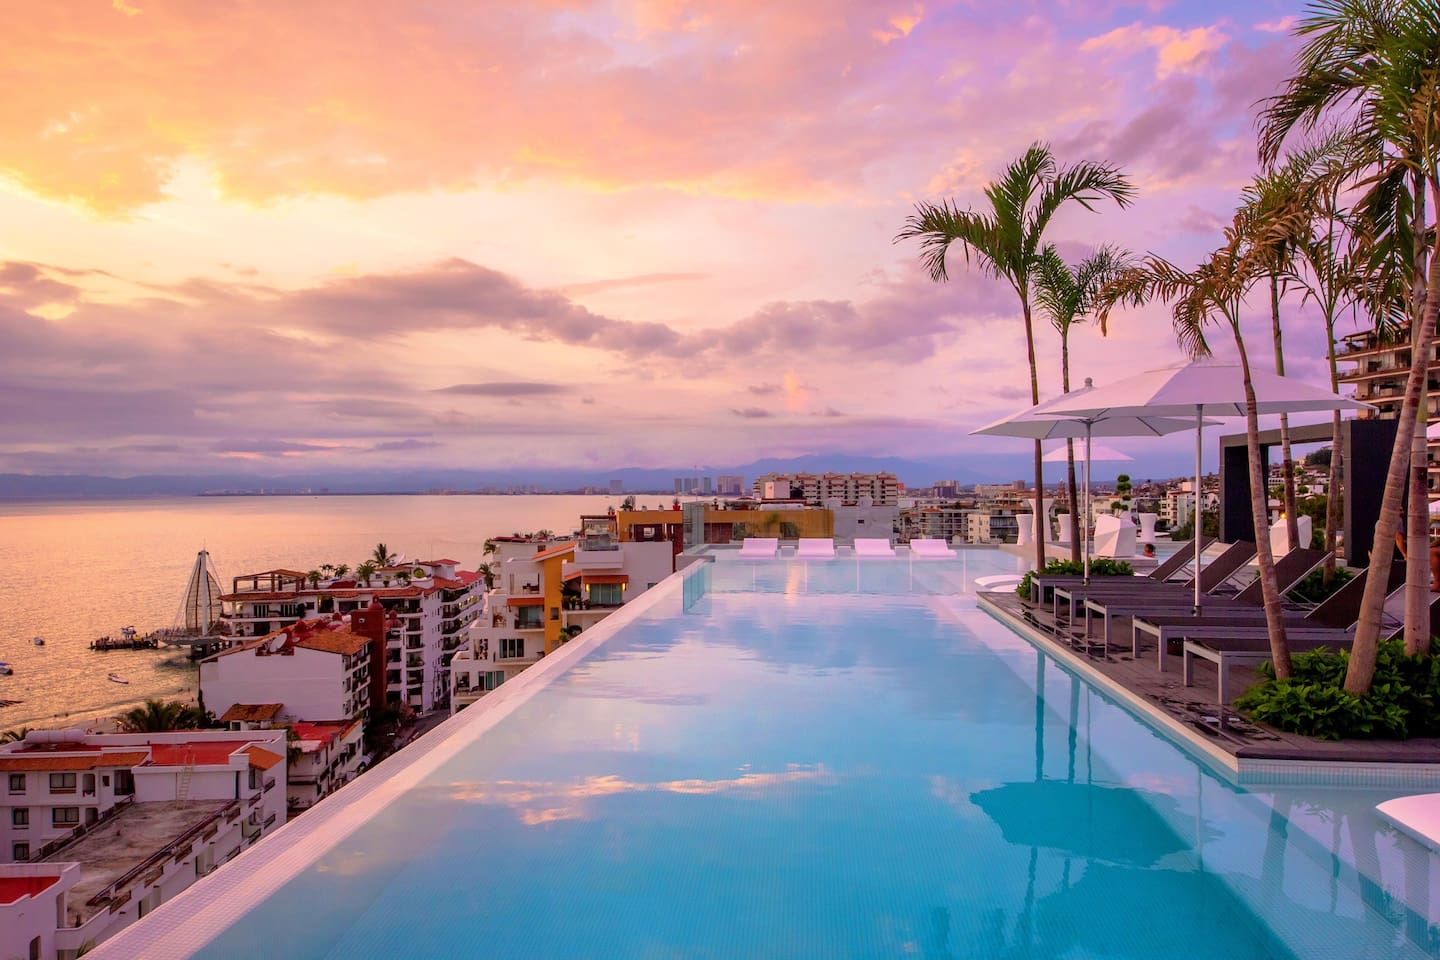 65 foot Roof Top Infinity pool  with spectacular Ocean and Mountain views!